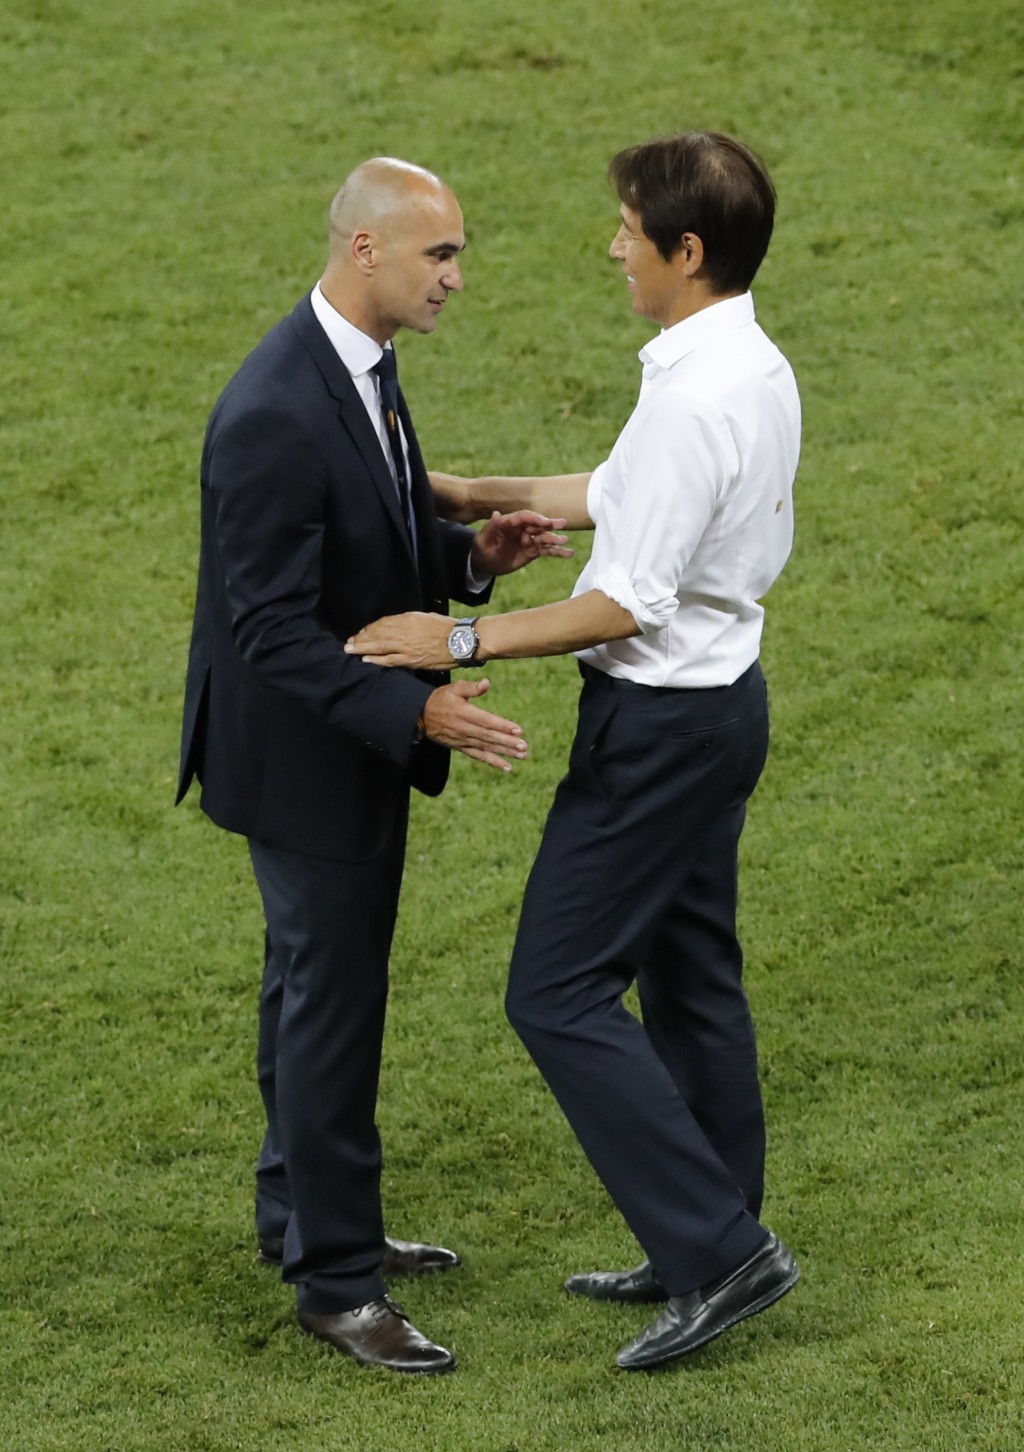 Belgium coach Roberto Martinez, left, greets Japan's head coach Akira Nishino at the end of the round of 16 match between Belgium and Japan at the 201